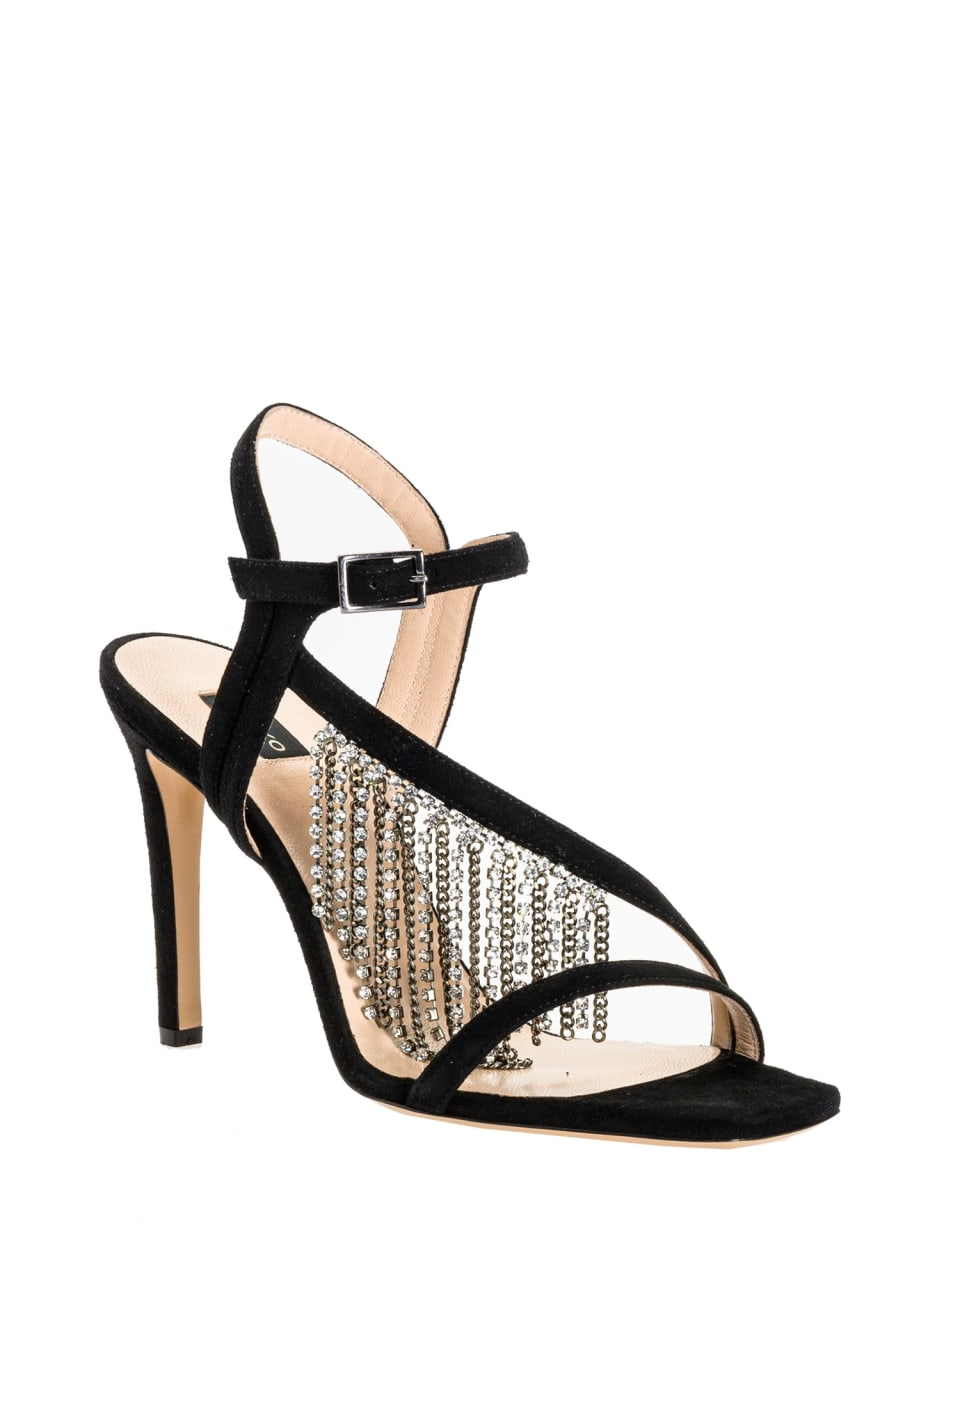 Sandals with cascade of rhinestones